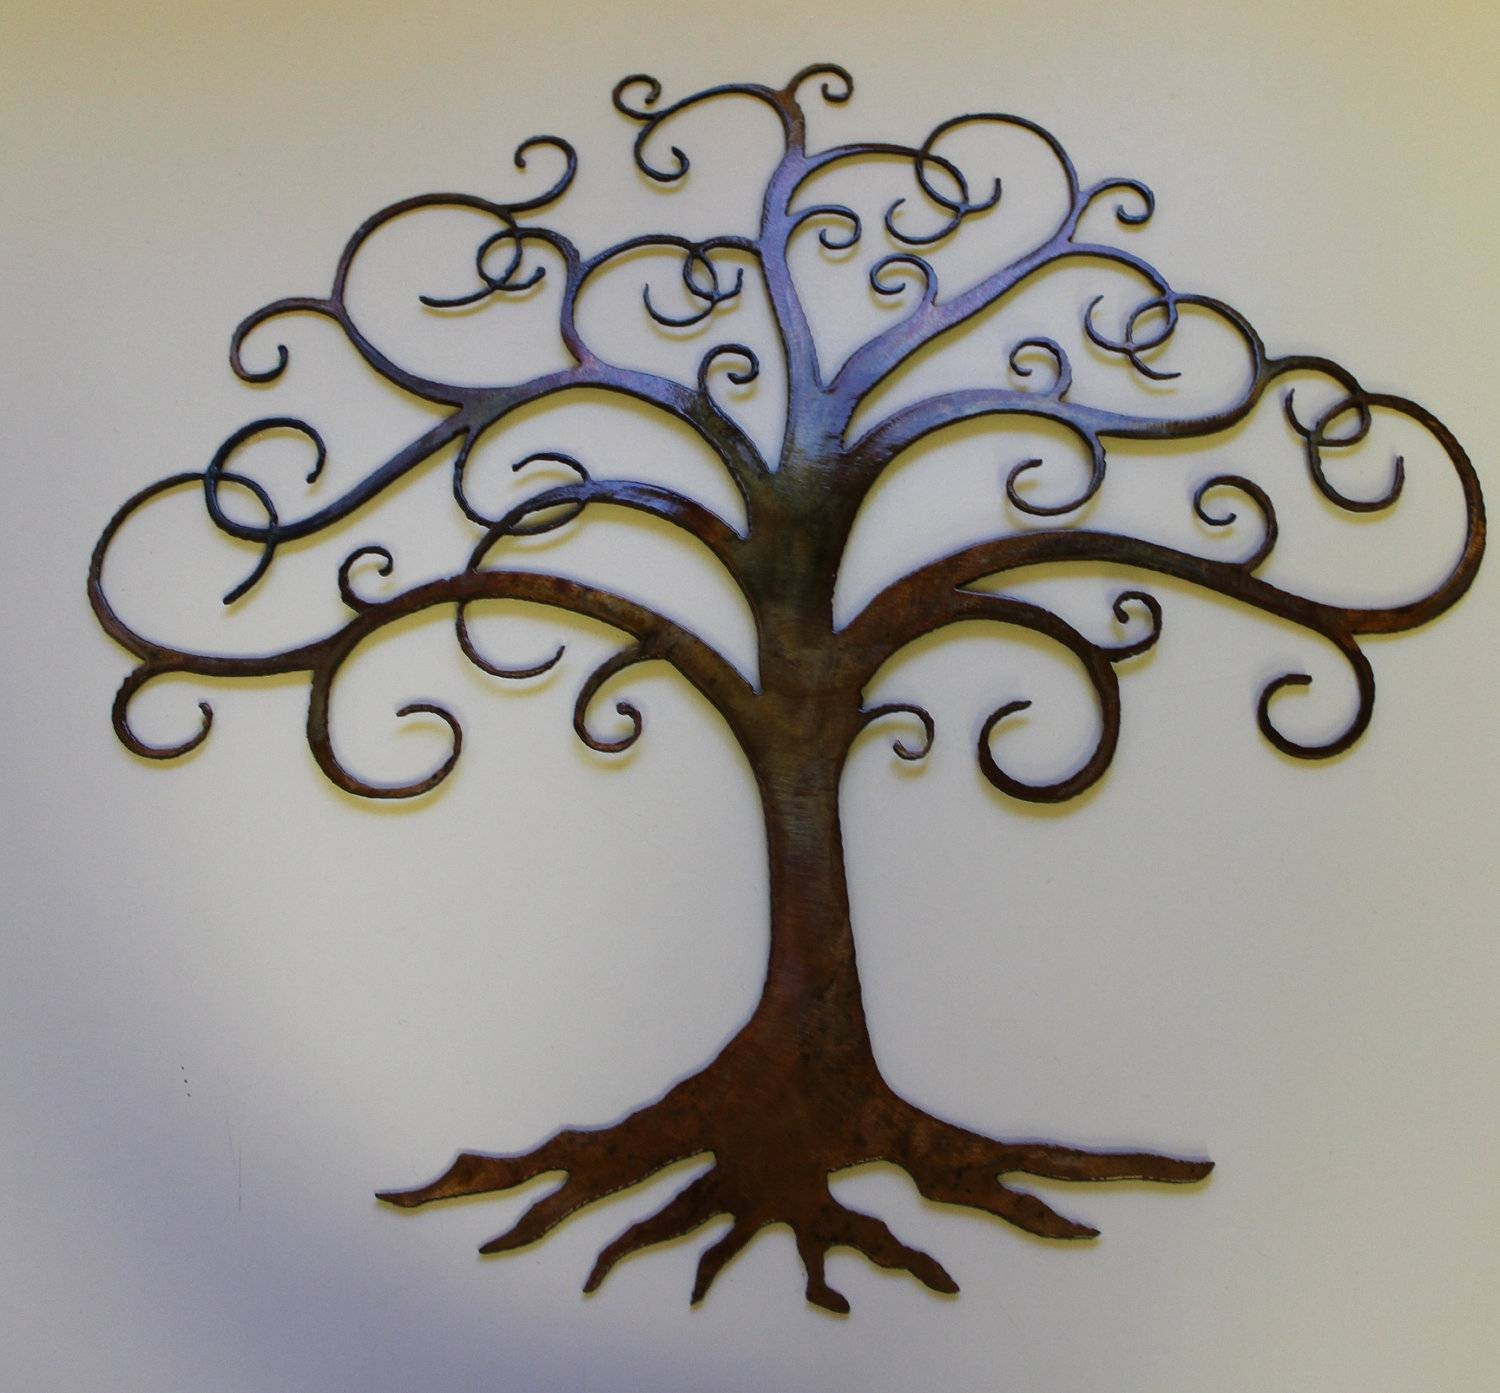 Wall Art Designs: Metal Wall Art Trees Breathtaking Large Metal With Best And Newest Large Metal Art (View 18 of 20)